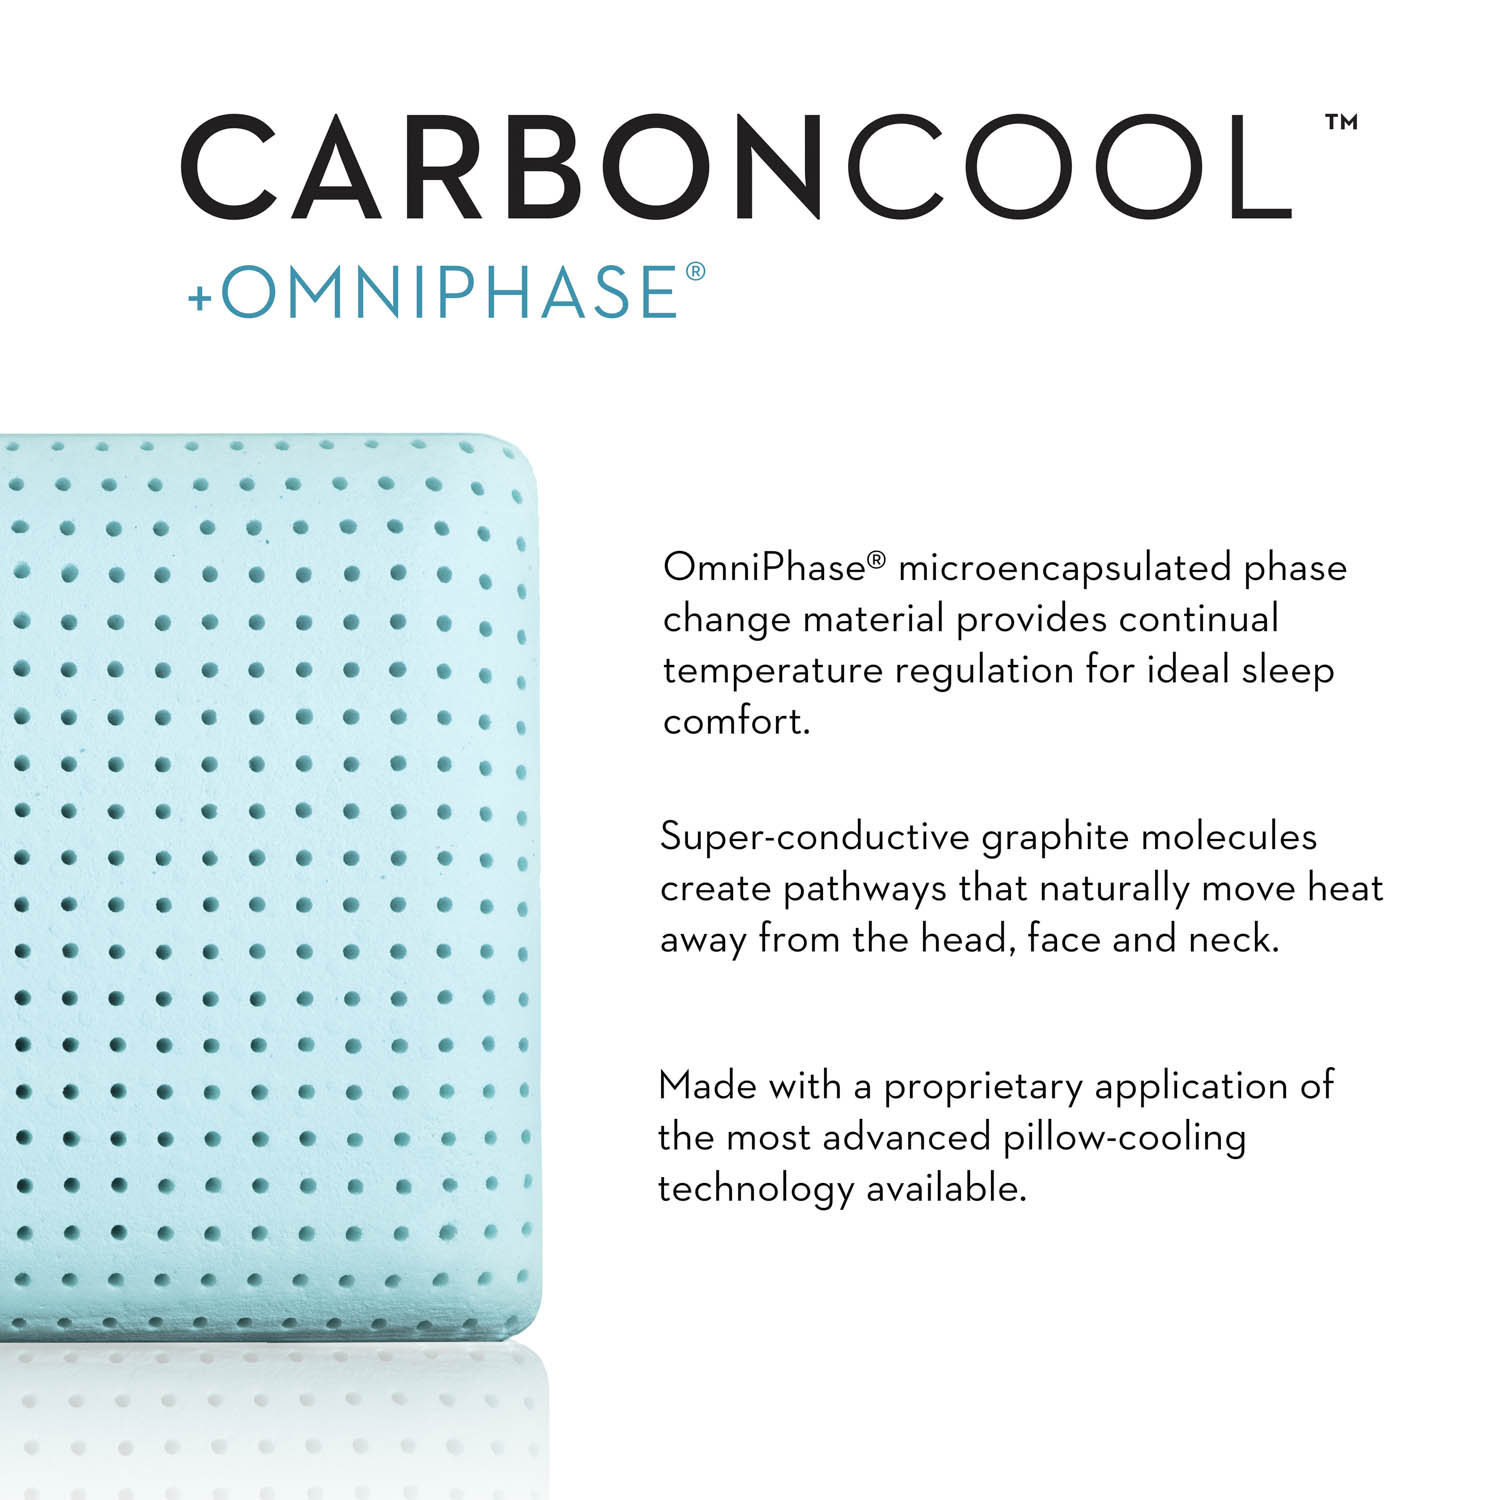 z carbon cool pillow mid loft plush queen carboncool omniphase pillow hotel to home hotel surplus